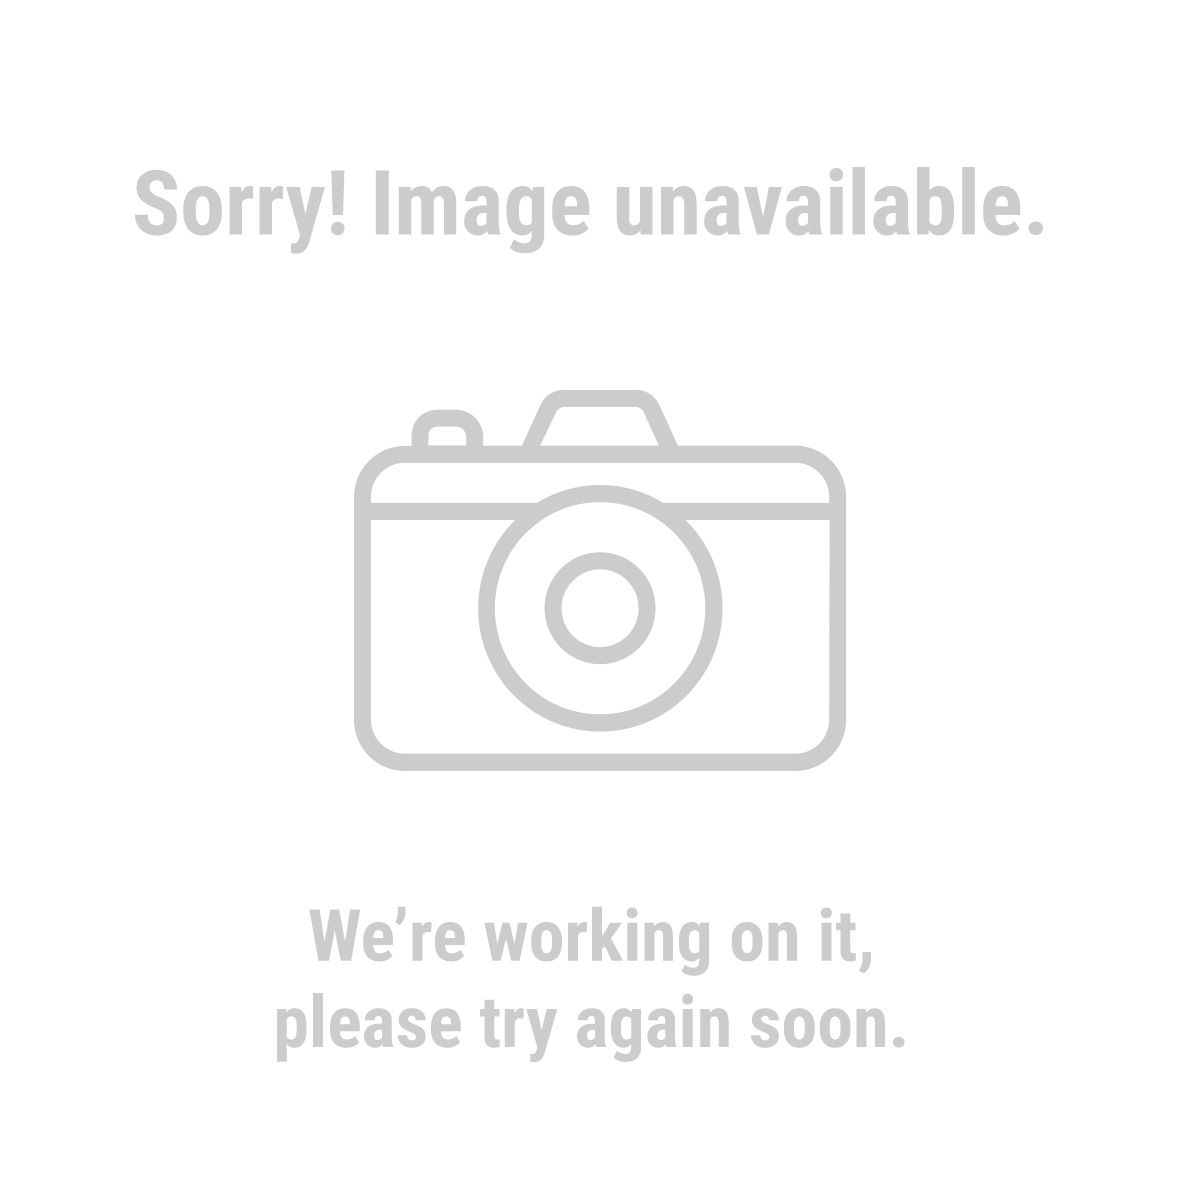 Predator Outdoor Power Equipment 62323 212cc Chipper Shredder